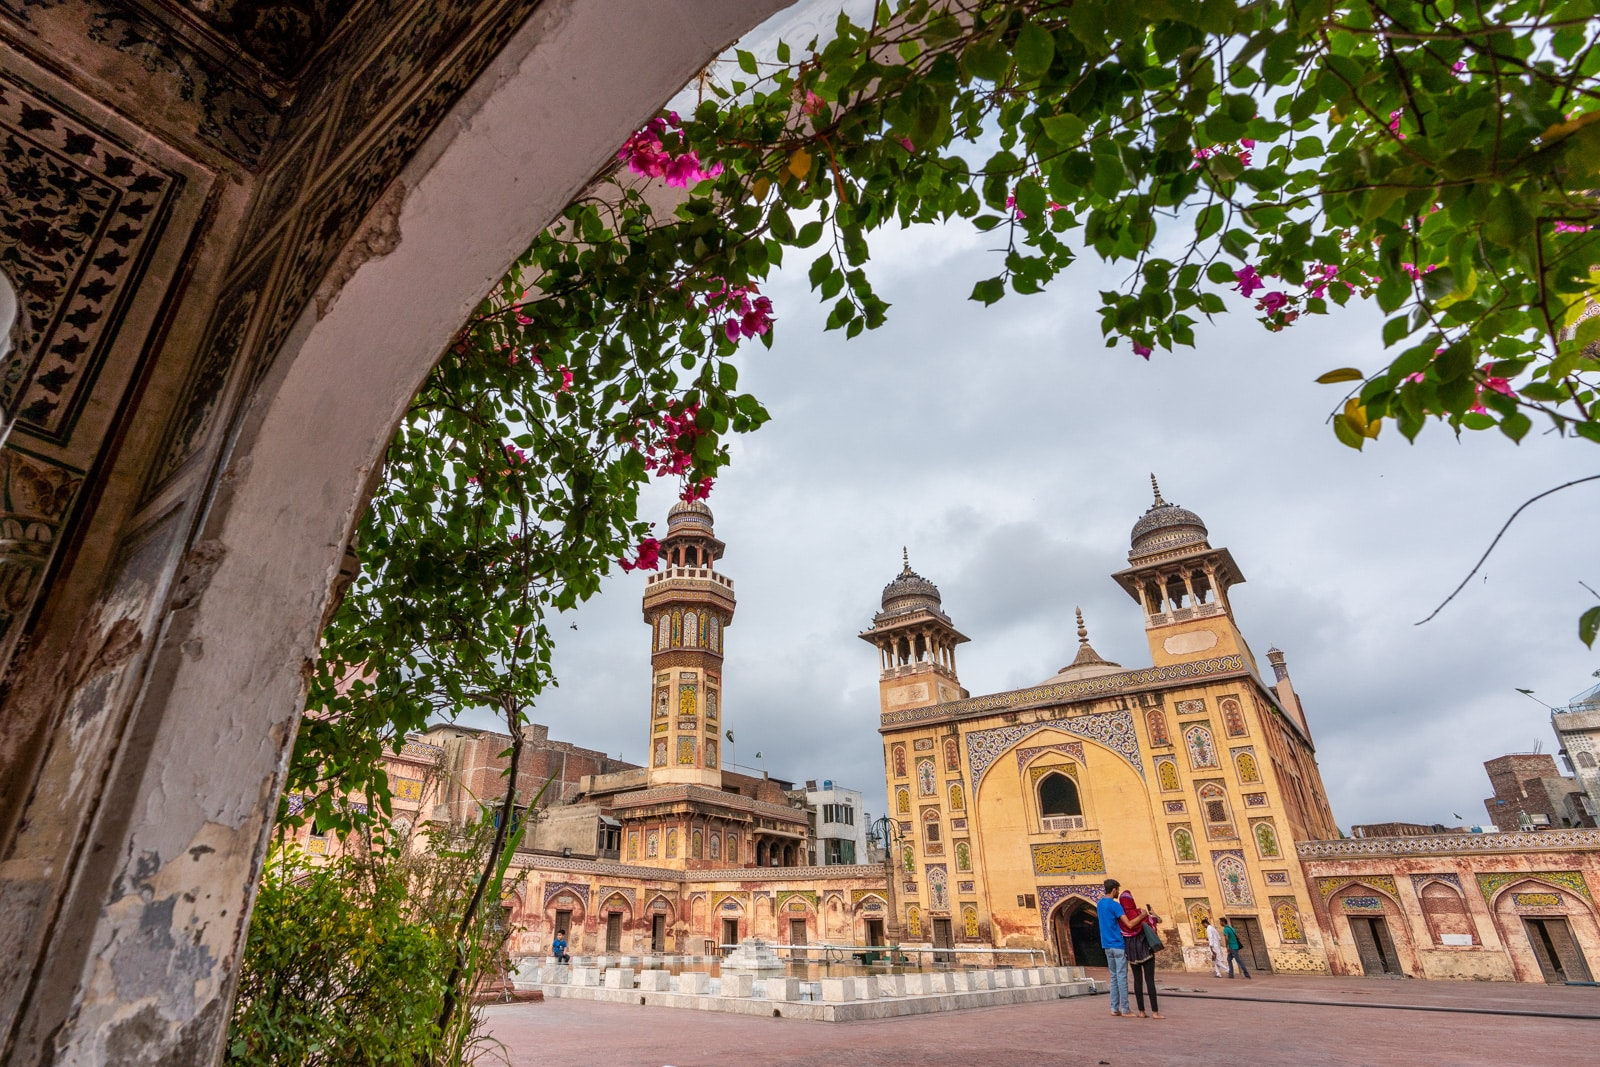 Wazir Khan mosque in Lahore through a flower lined archway